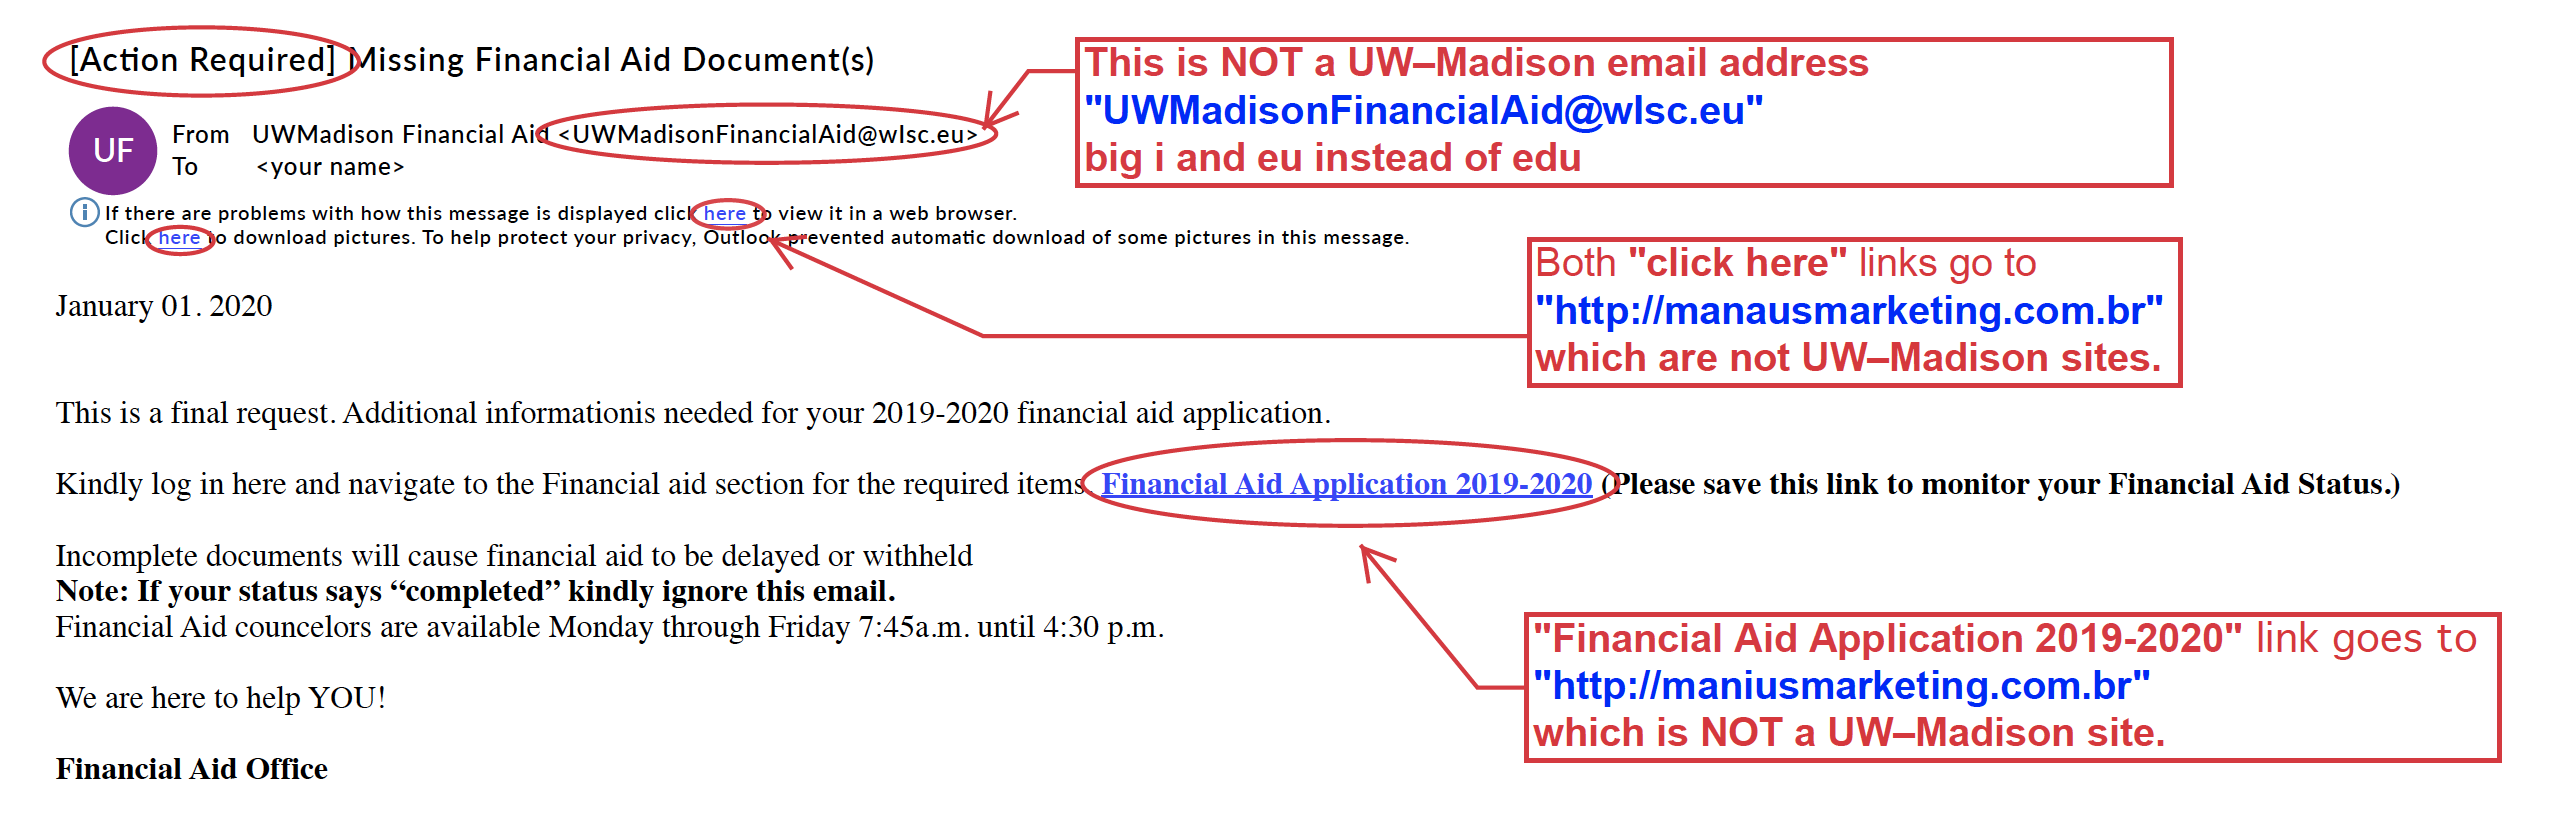 Example of a phishing financial aid email to students